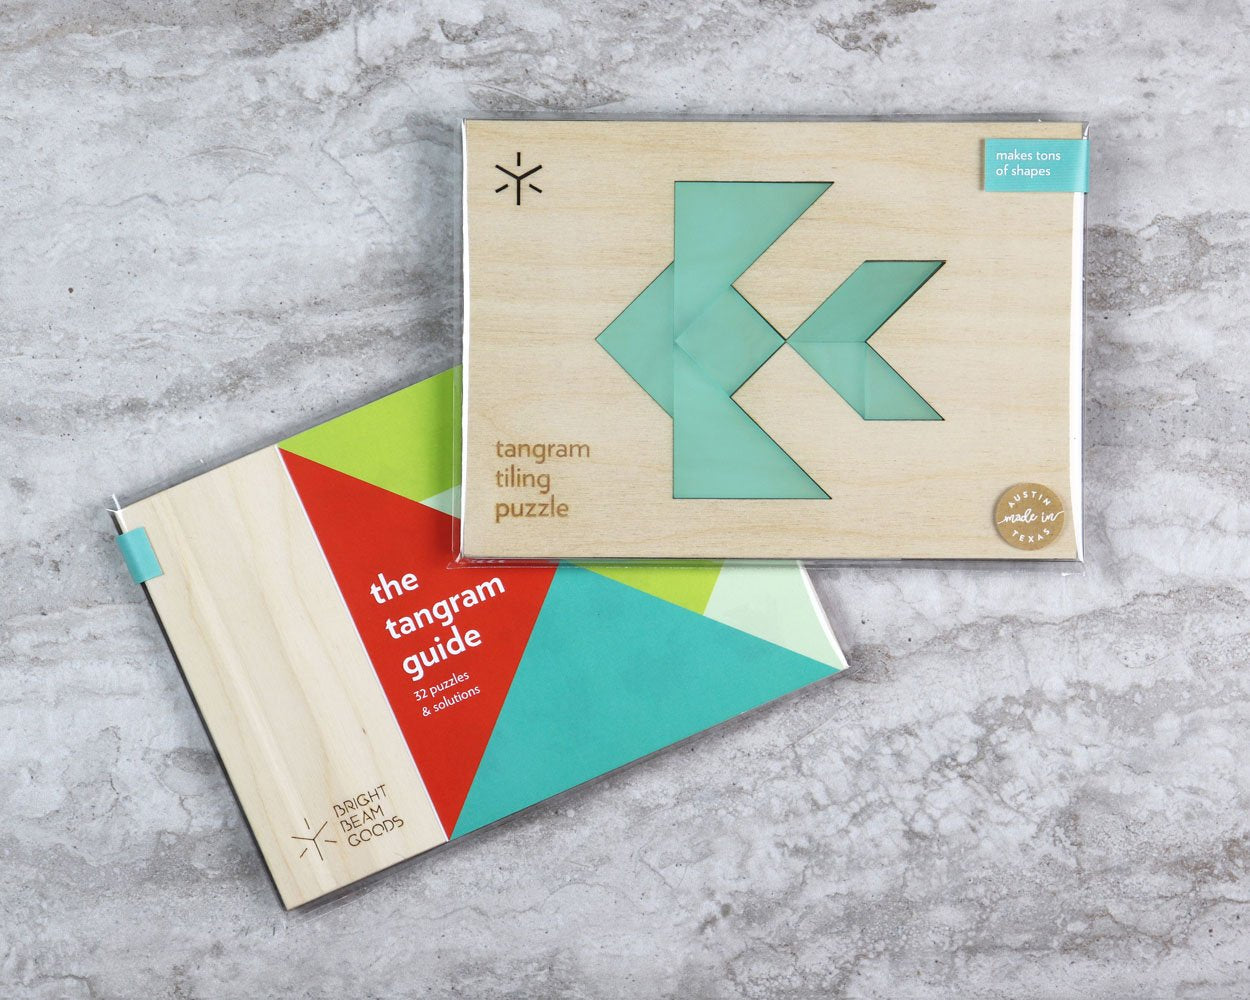 Fish tangram puzzle in packaging